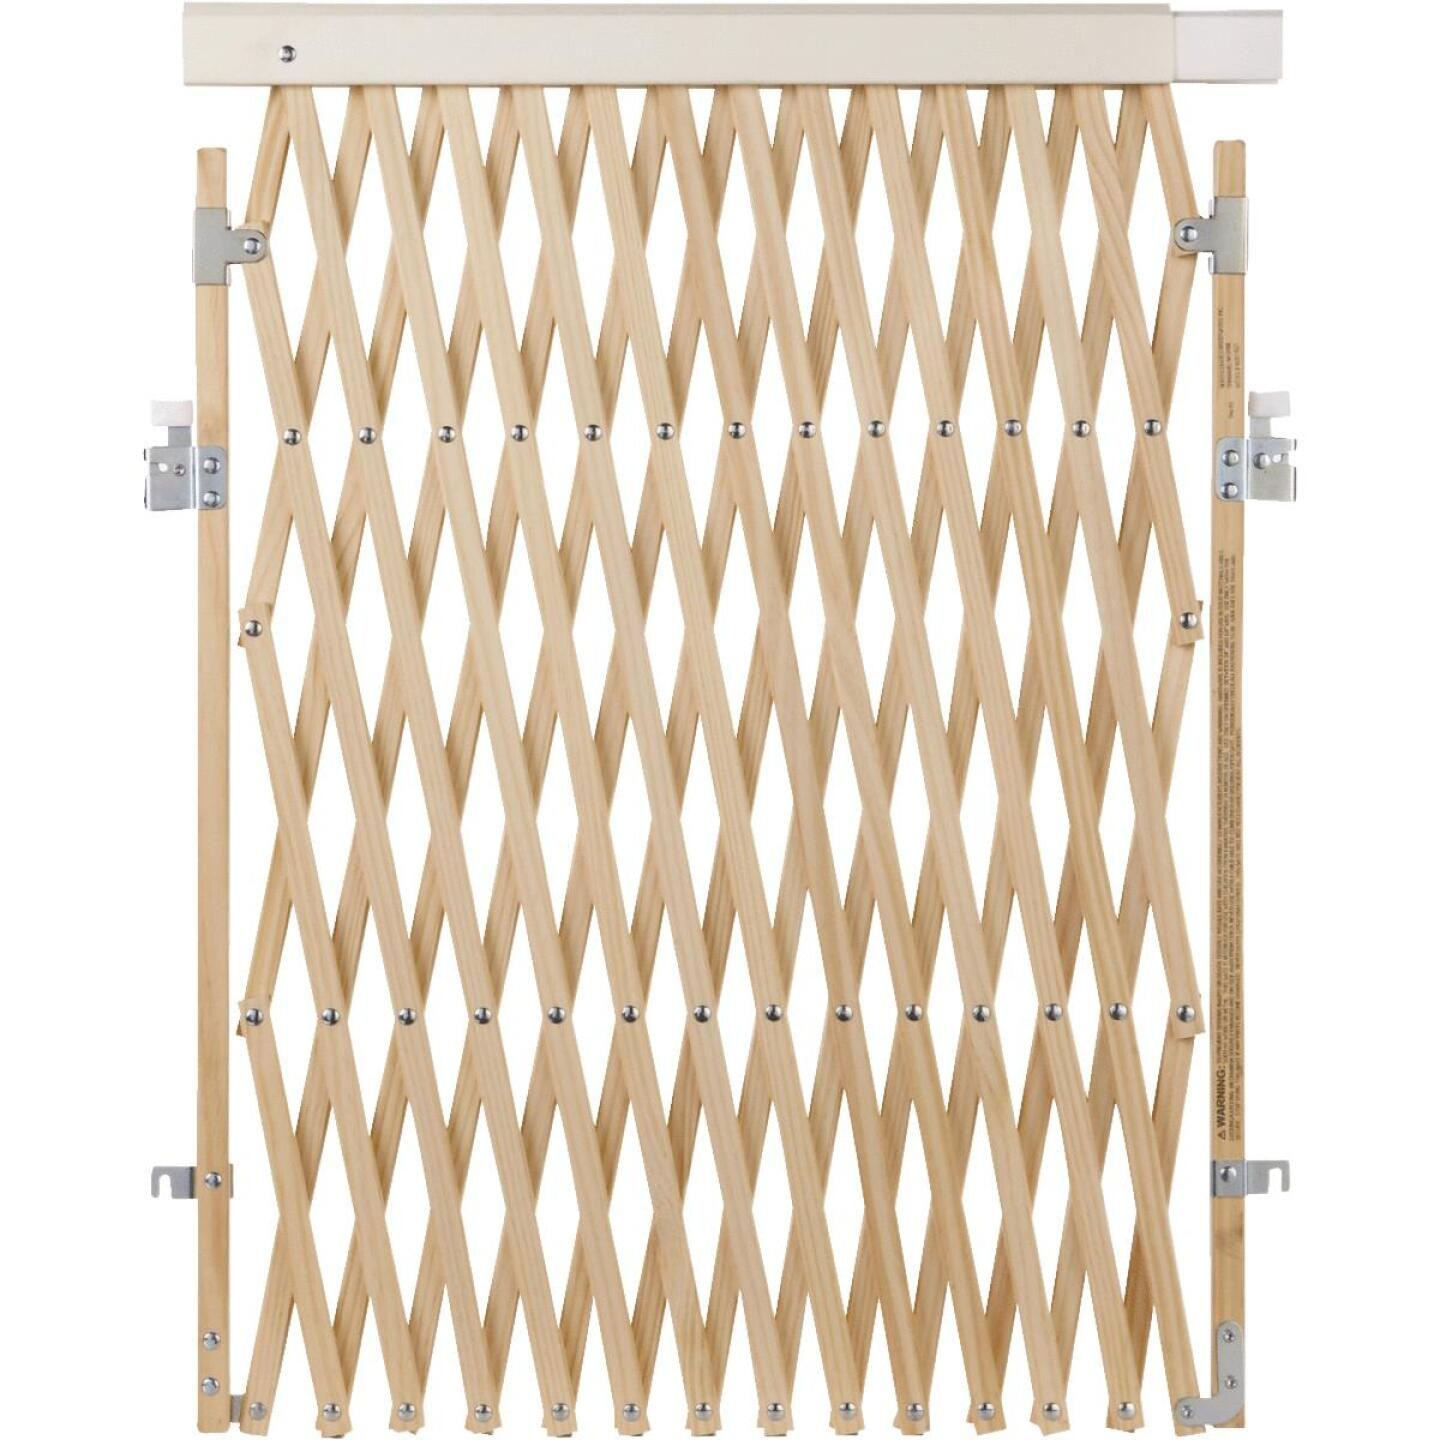 North States 60 In. Expandable Natural Wood Safety Gate Image 1